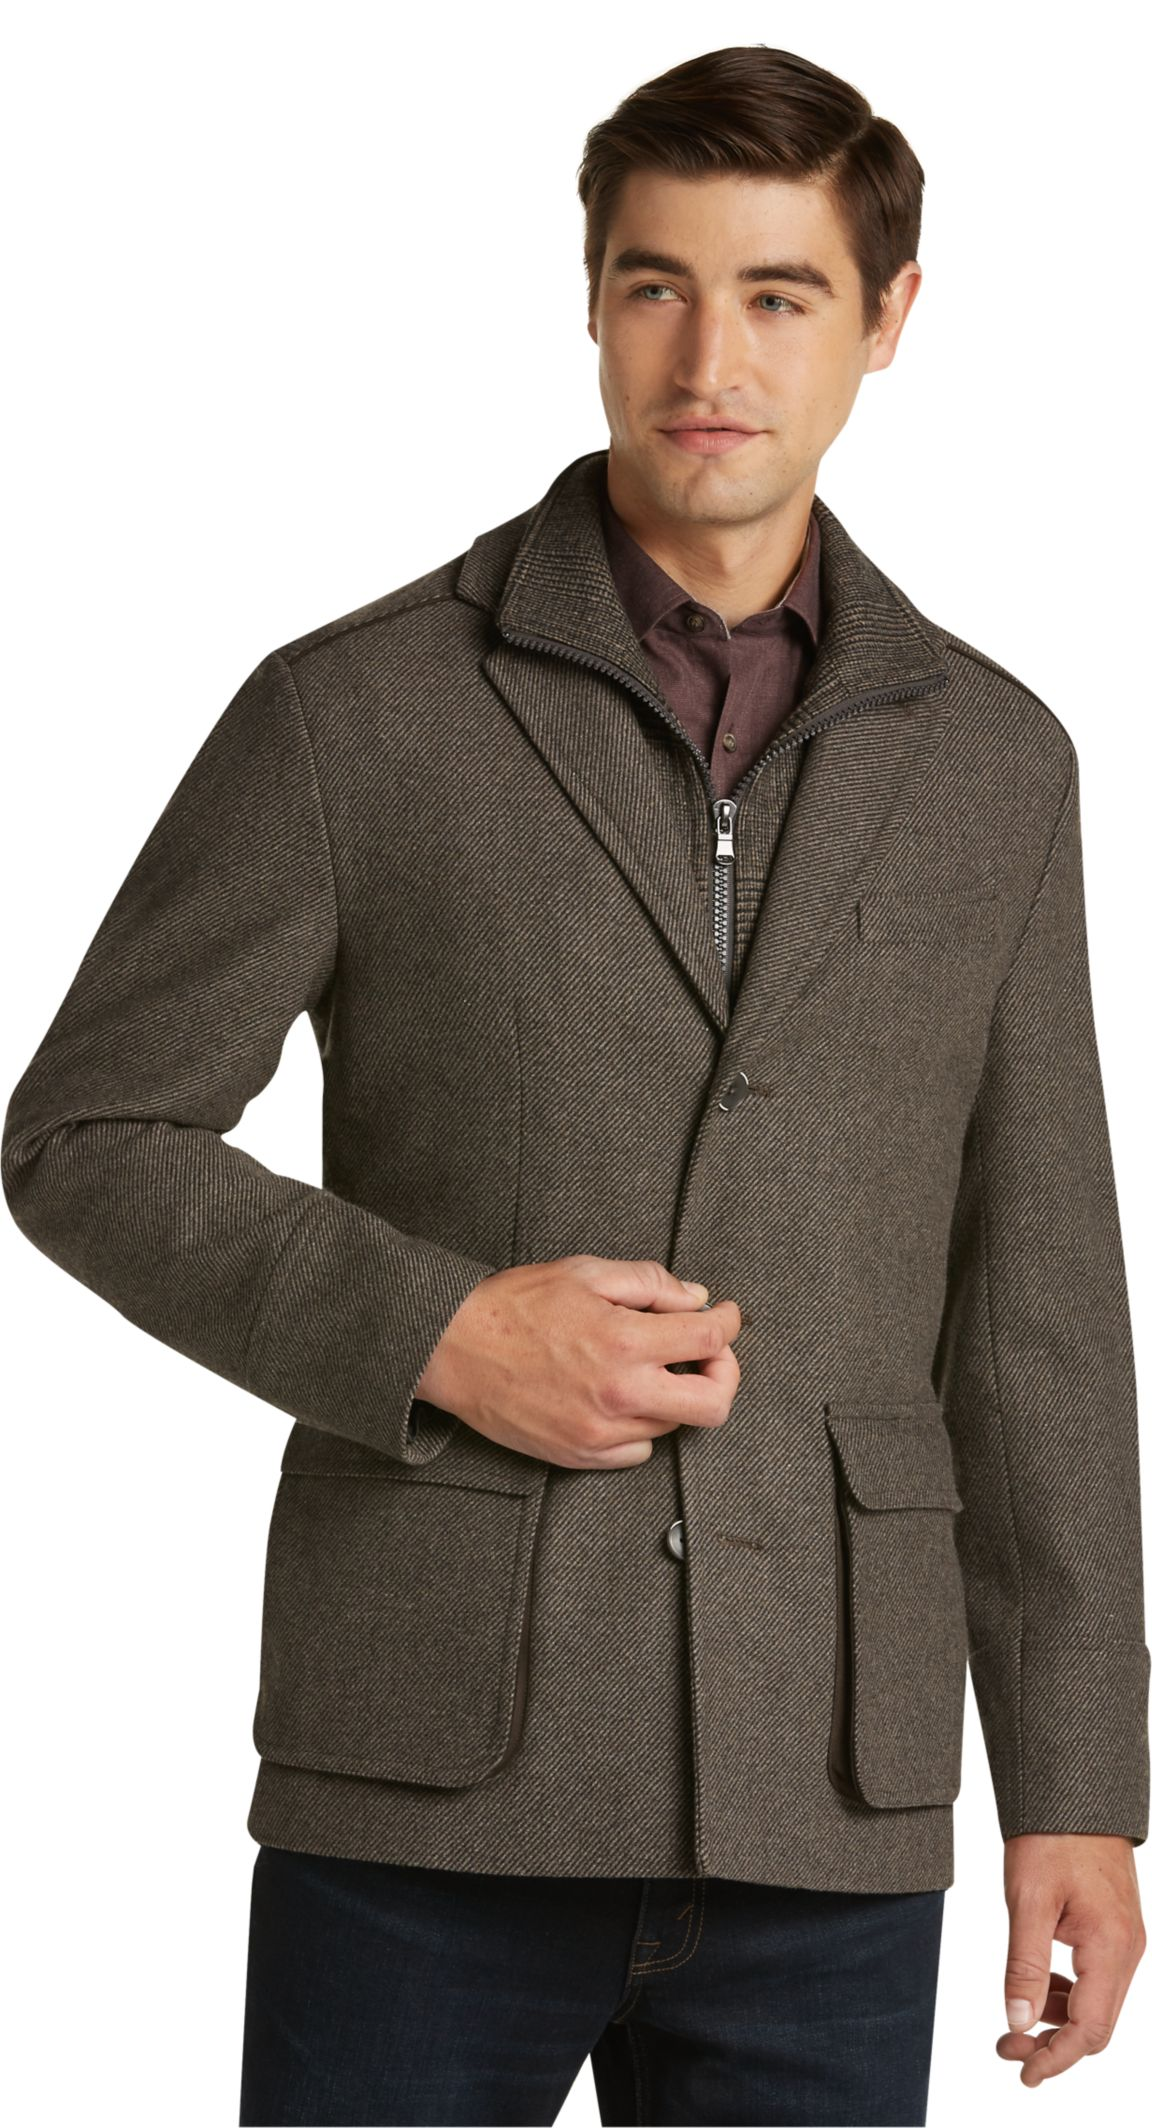 Men's Wool Casual Coats & Jackets | Men's Outerwear | JoS. A. Bank ...